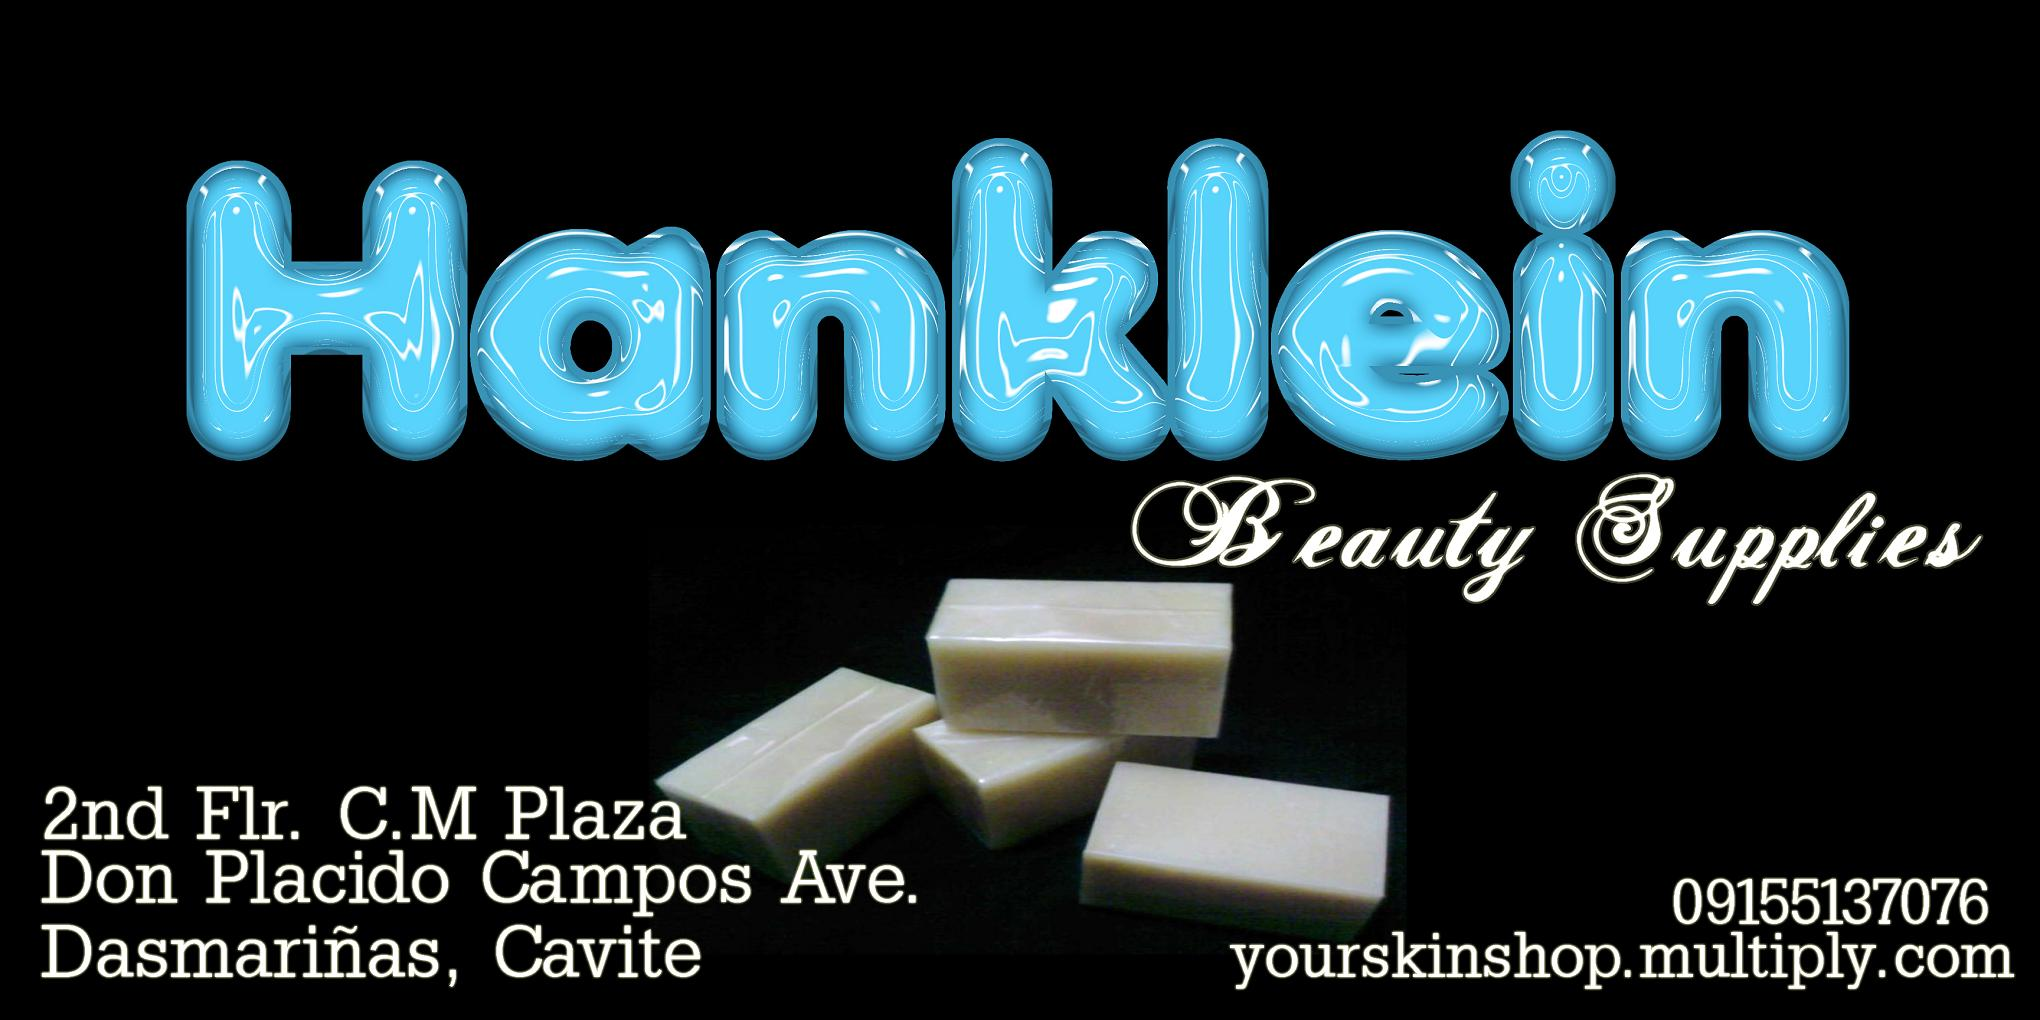 Hanklein Beauty Supplies logo